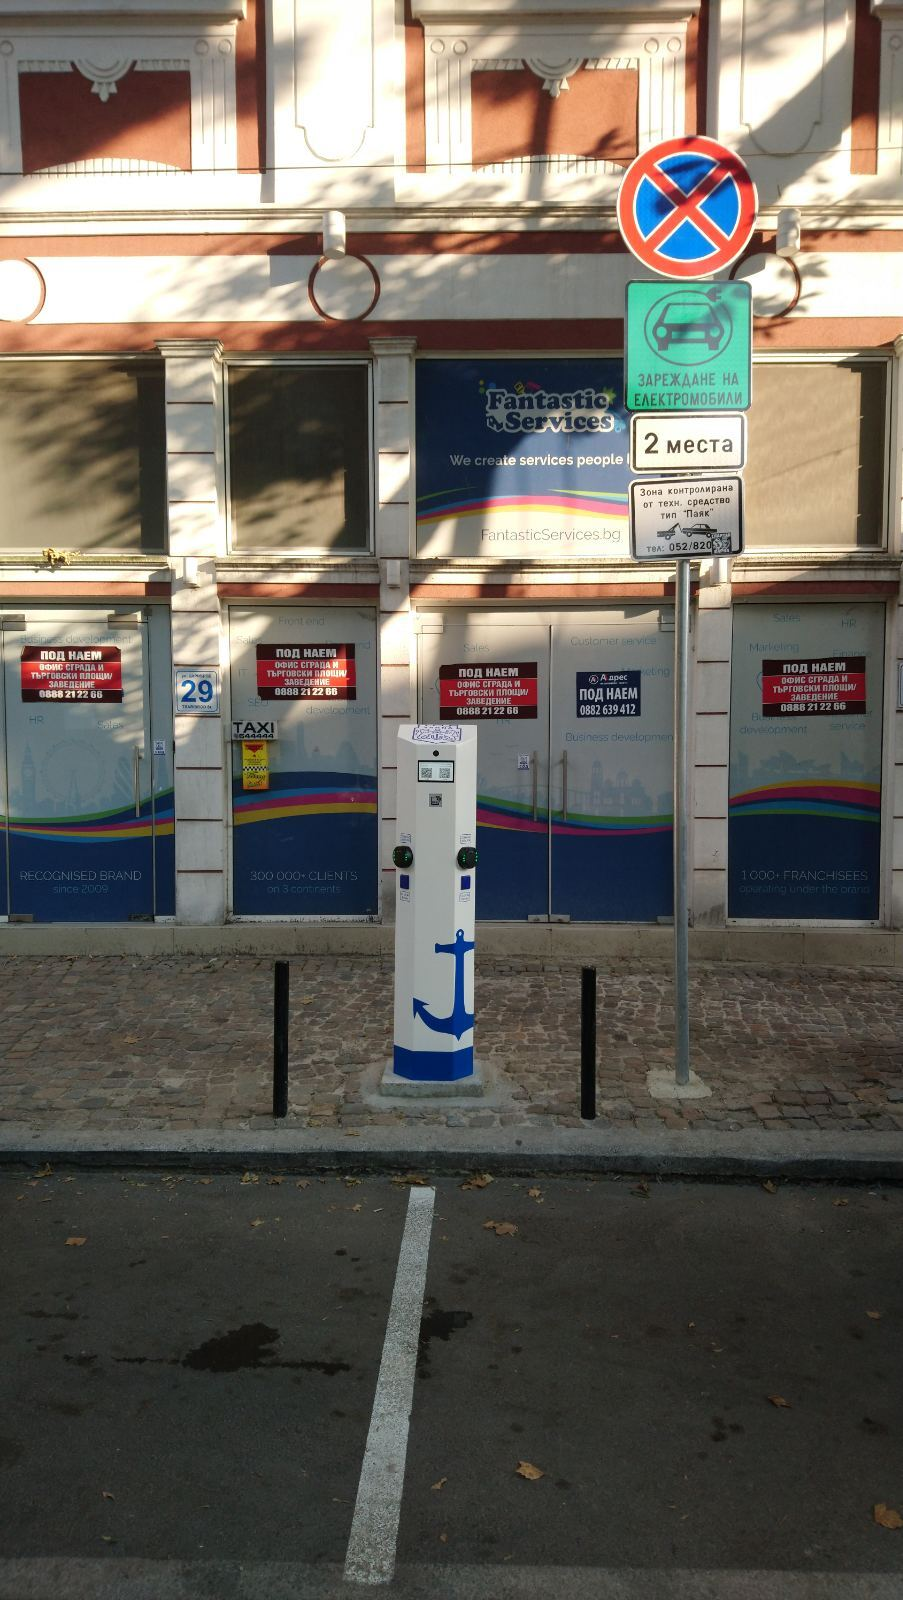 """Municipality of Varna is starting an EV charging network with 30+ charging stations - Bulgaria's third-largest city and summer capital, Varna, is getting free EV charging at 20+ locations. Municipality of town Varna and ME """"Municipality car parks and blue zone - Varna"""" successfully executes the project, which started back in May 2020 with approved investment projects and successful acceptance from local energy companies. The municipality's primary goal is to implement electric vehicle charging stations infrastructure, incentivizing the residents with greener means of transport and benefits for the environment."""